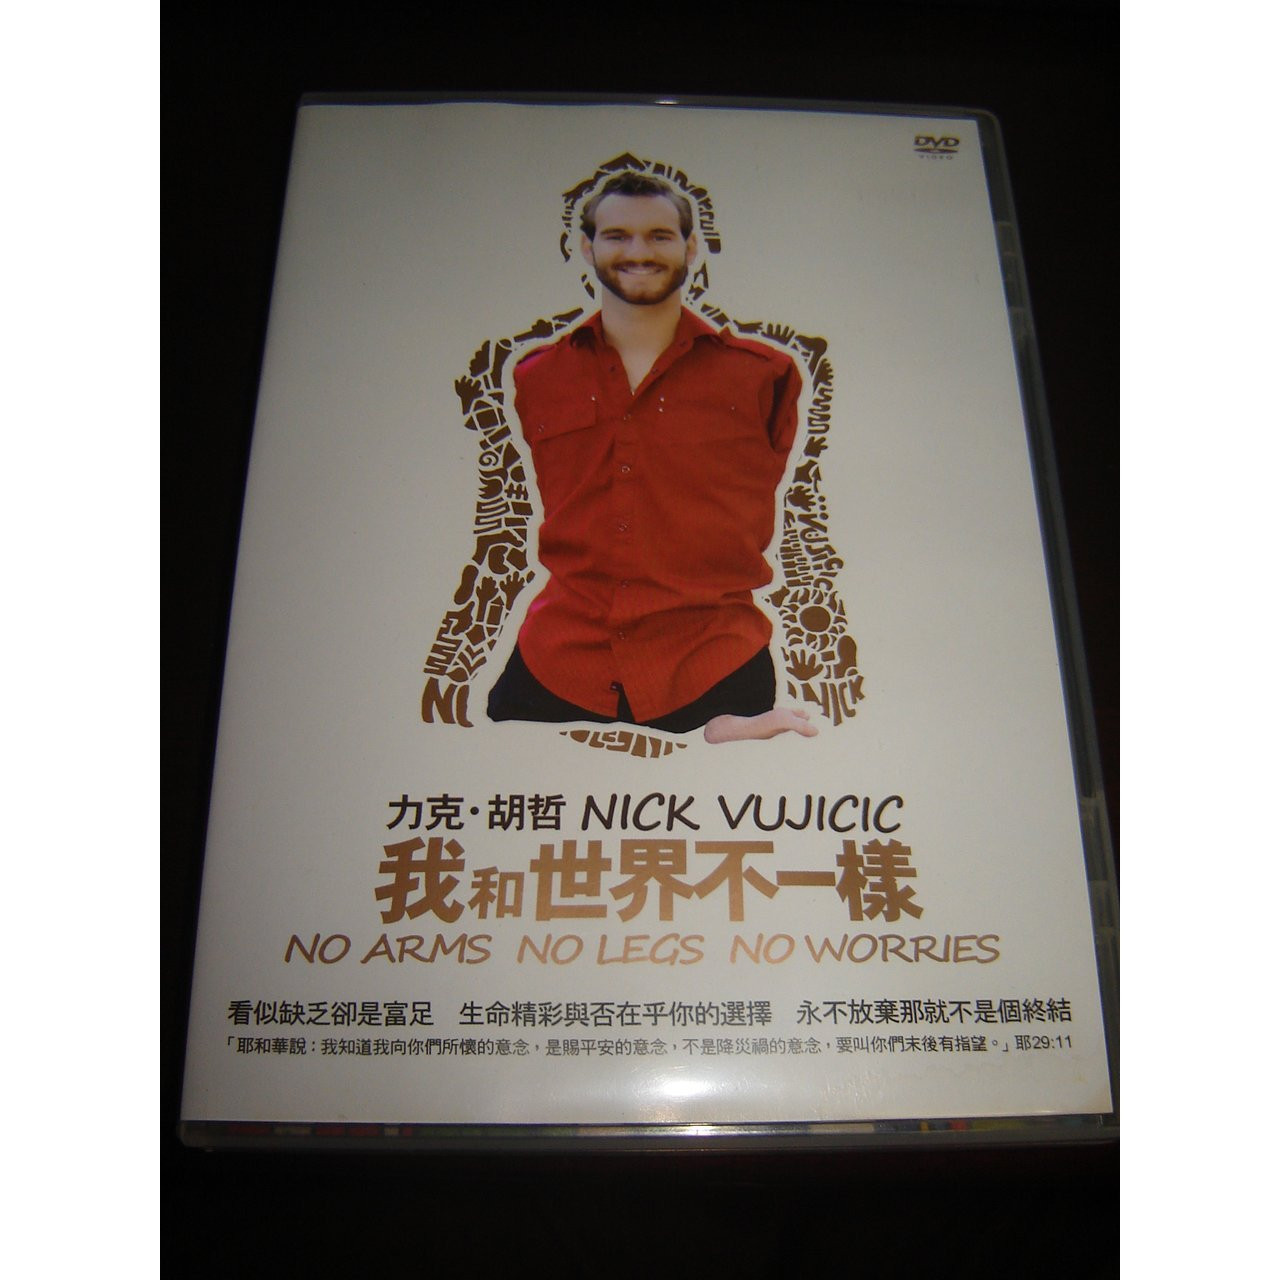 No Arms No Legs No Worries - Nick Vujicic [DVD] / 146 Minutes / Audio:  English / Subtitles: English, Chinese Traditional, Chinese Simplified /